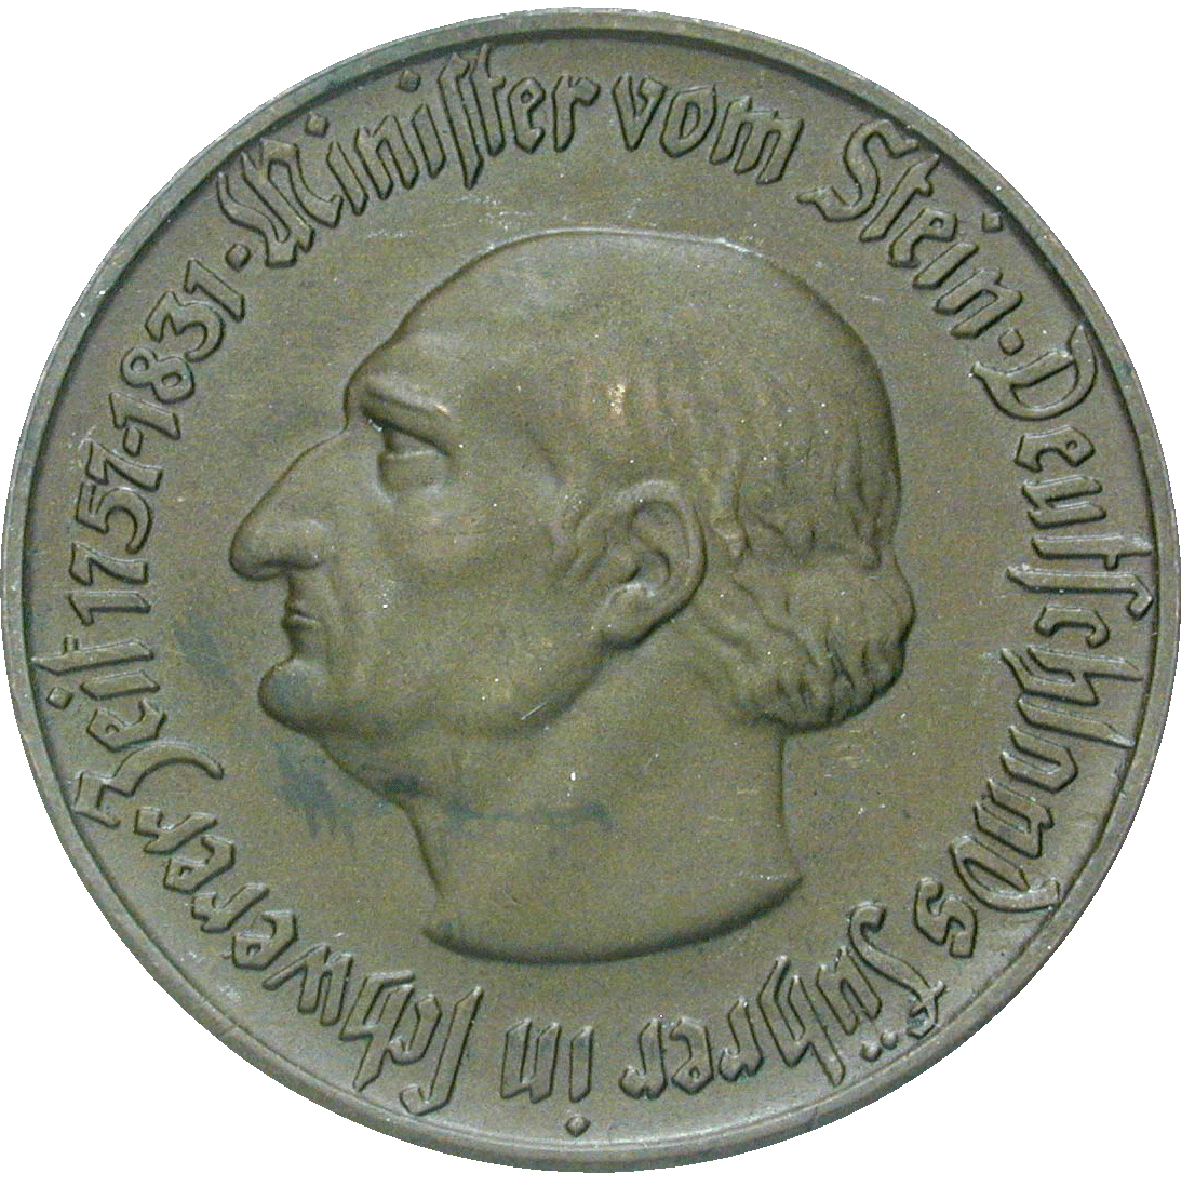 German Reich, Weimar Republic, Province of Westphalia, Emergency Issue 5 Mark 1921 (obverse)